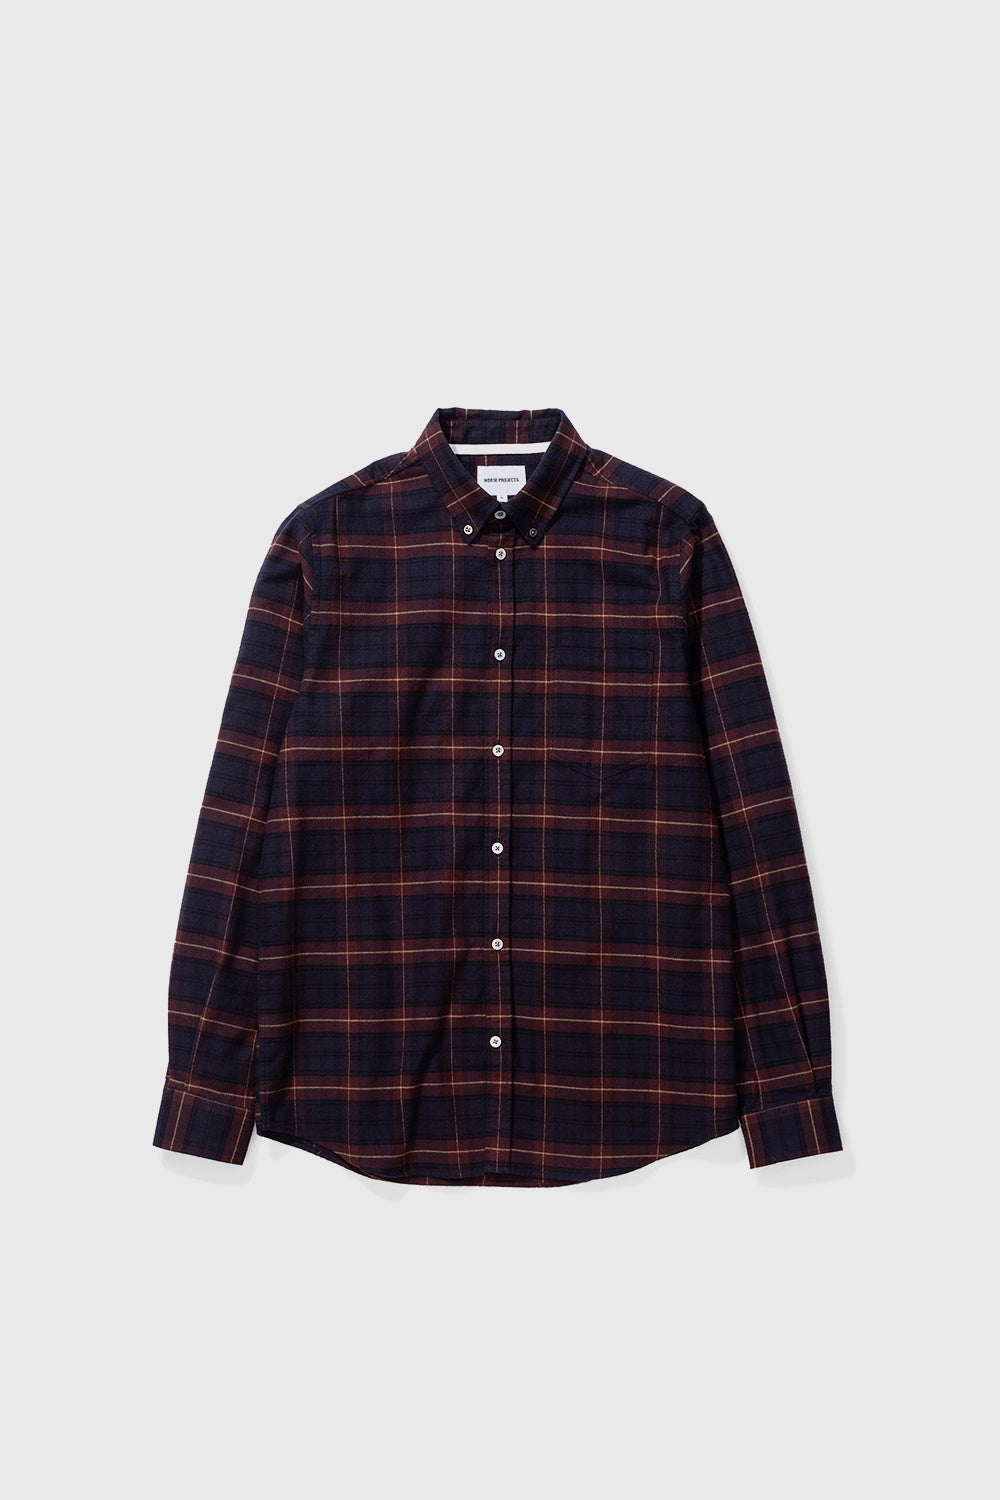 Anton Brushed Flannel Check - Cordovan Brown